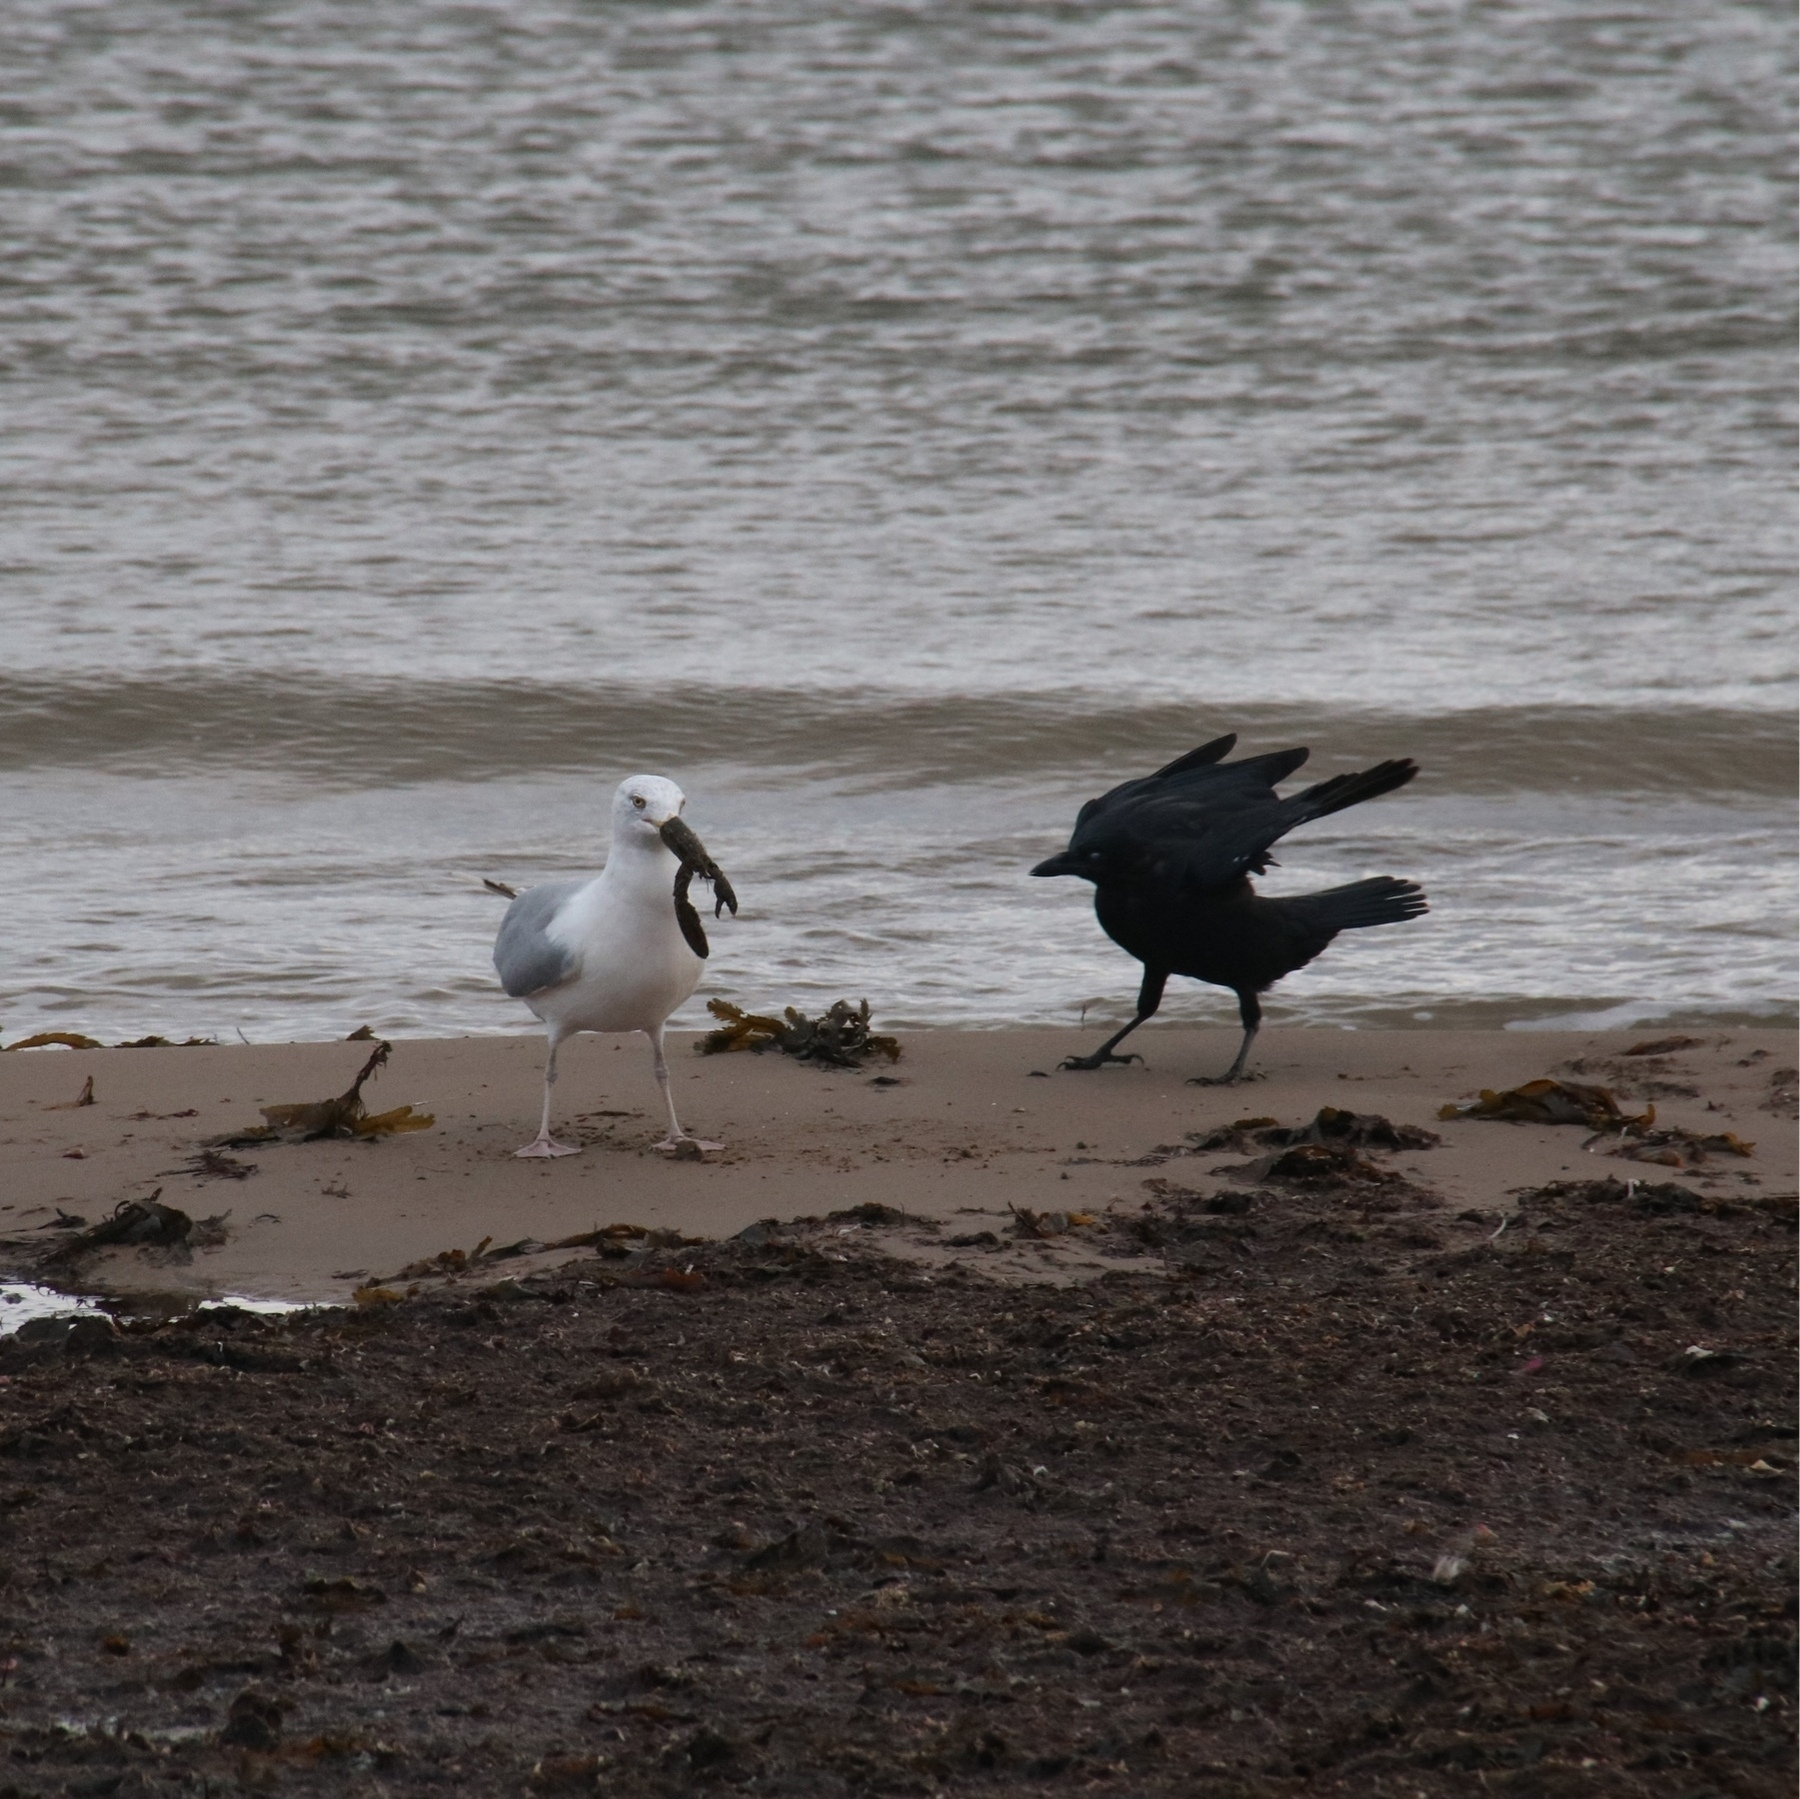 seagull with crayfish in its mouth. sandy beach covered in seaweed. a crow with its wings half folded